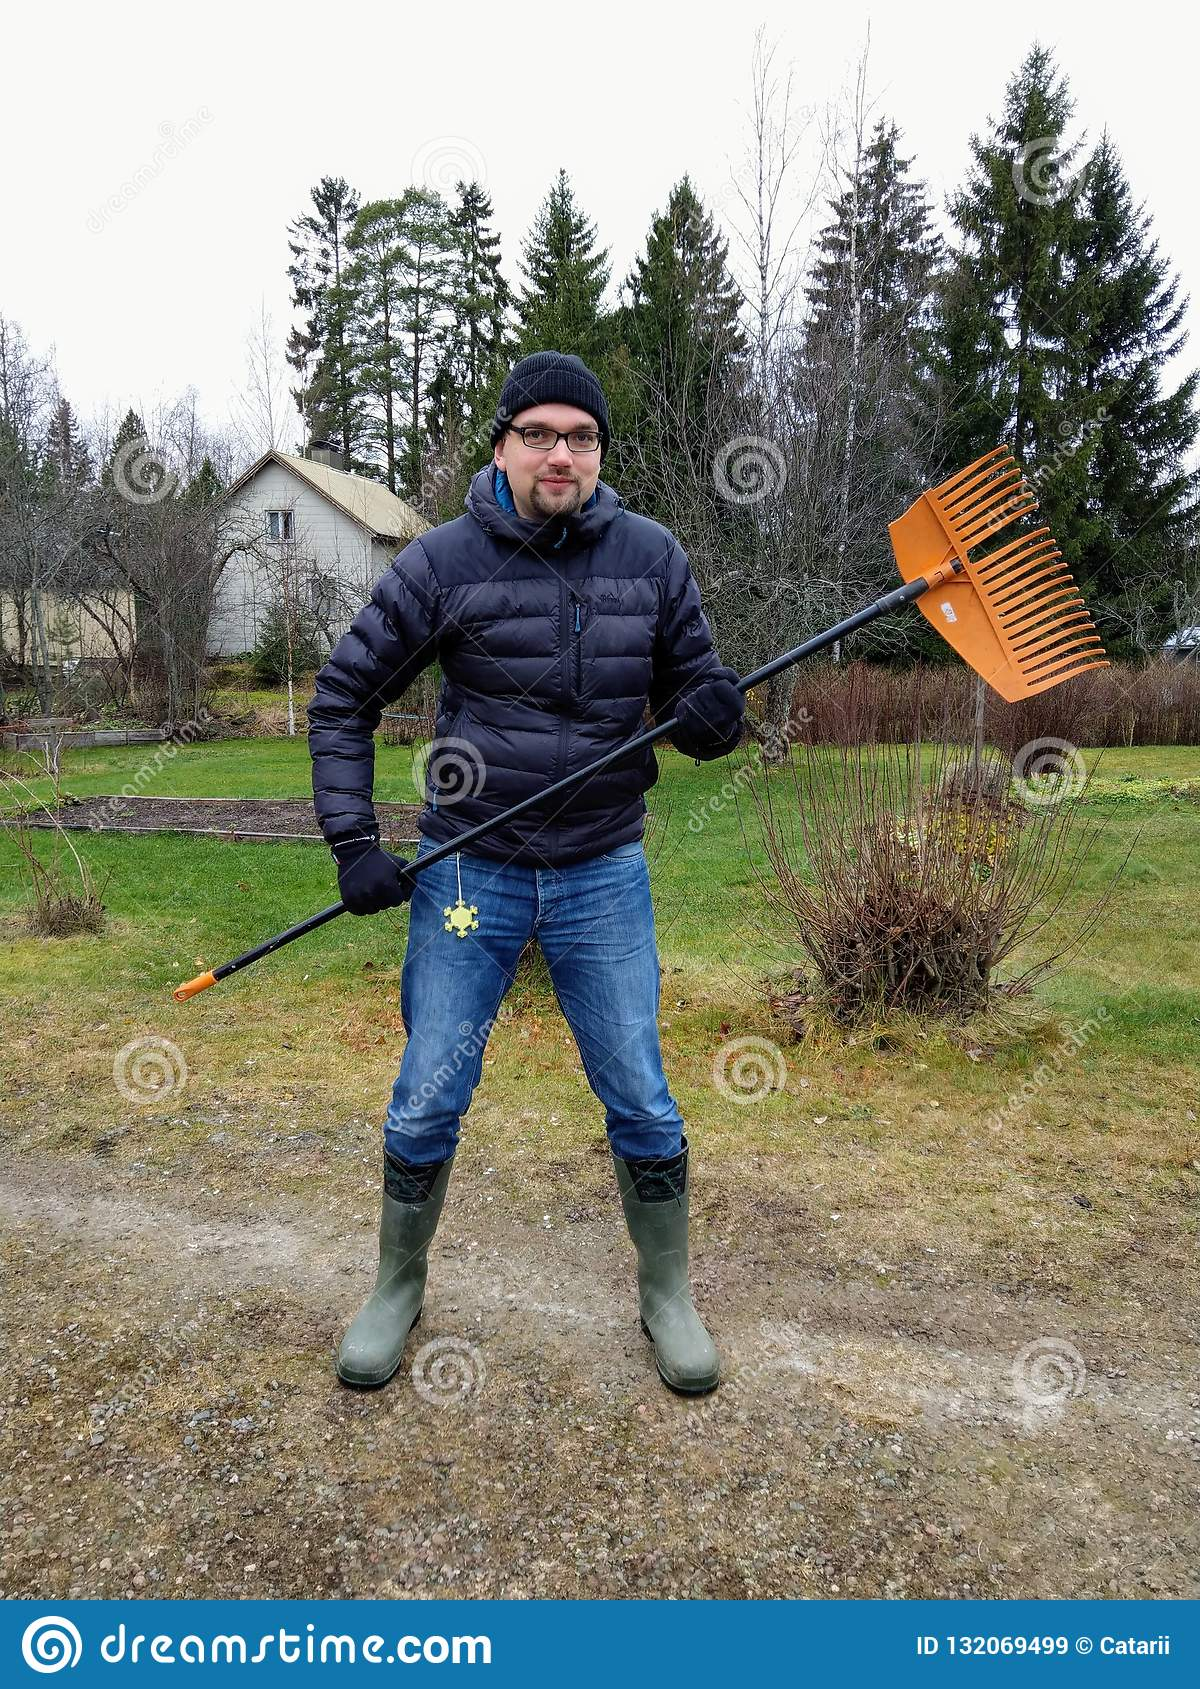 Finnish man preparing to go in the forest to rake leaves